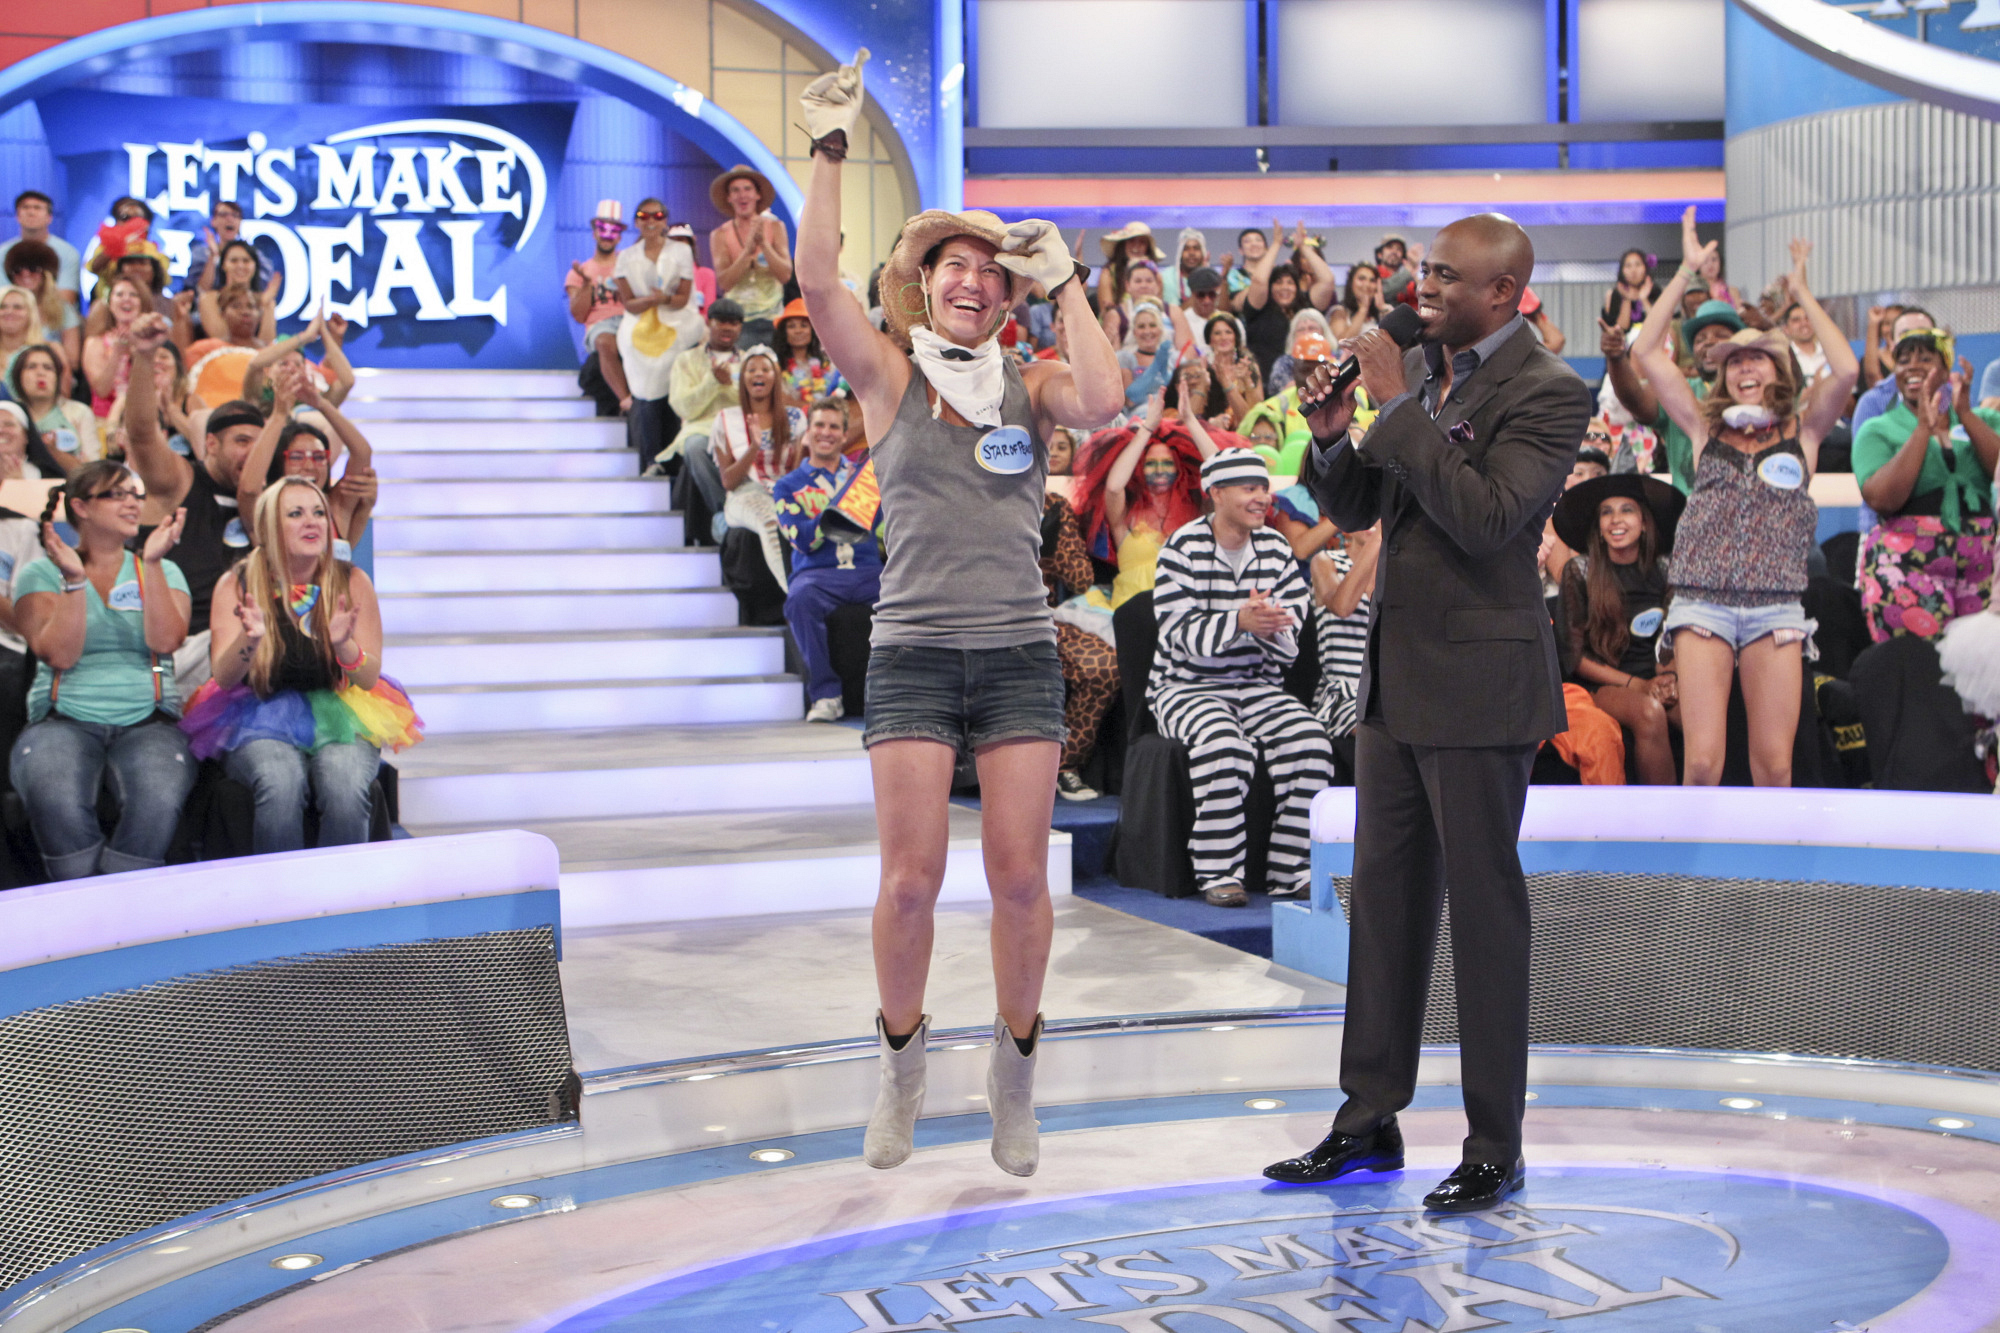 Jumping For Joy on Let's Make a Deal